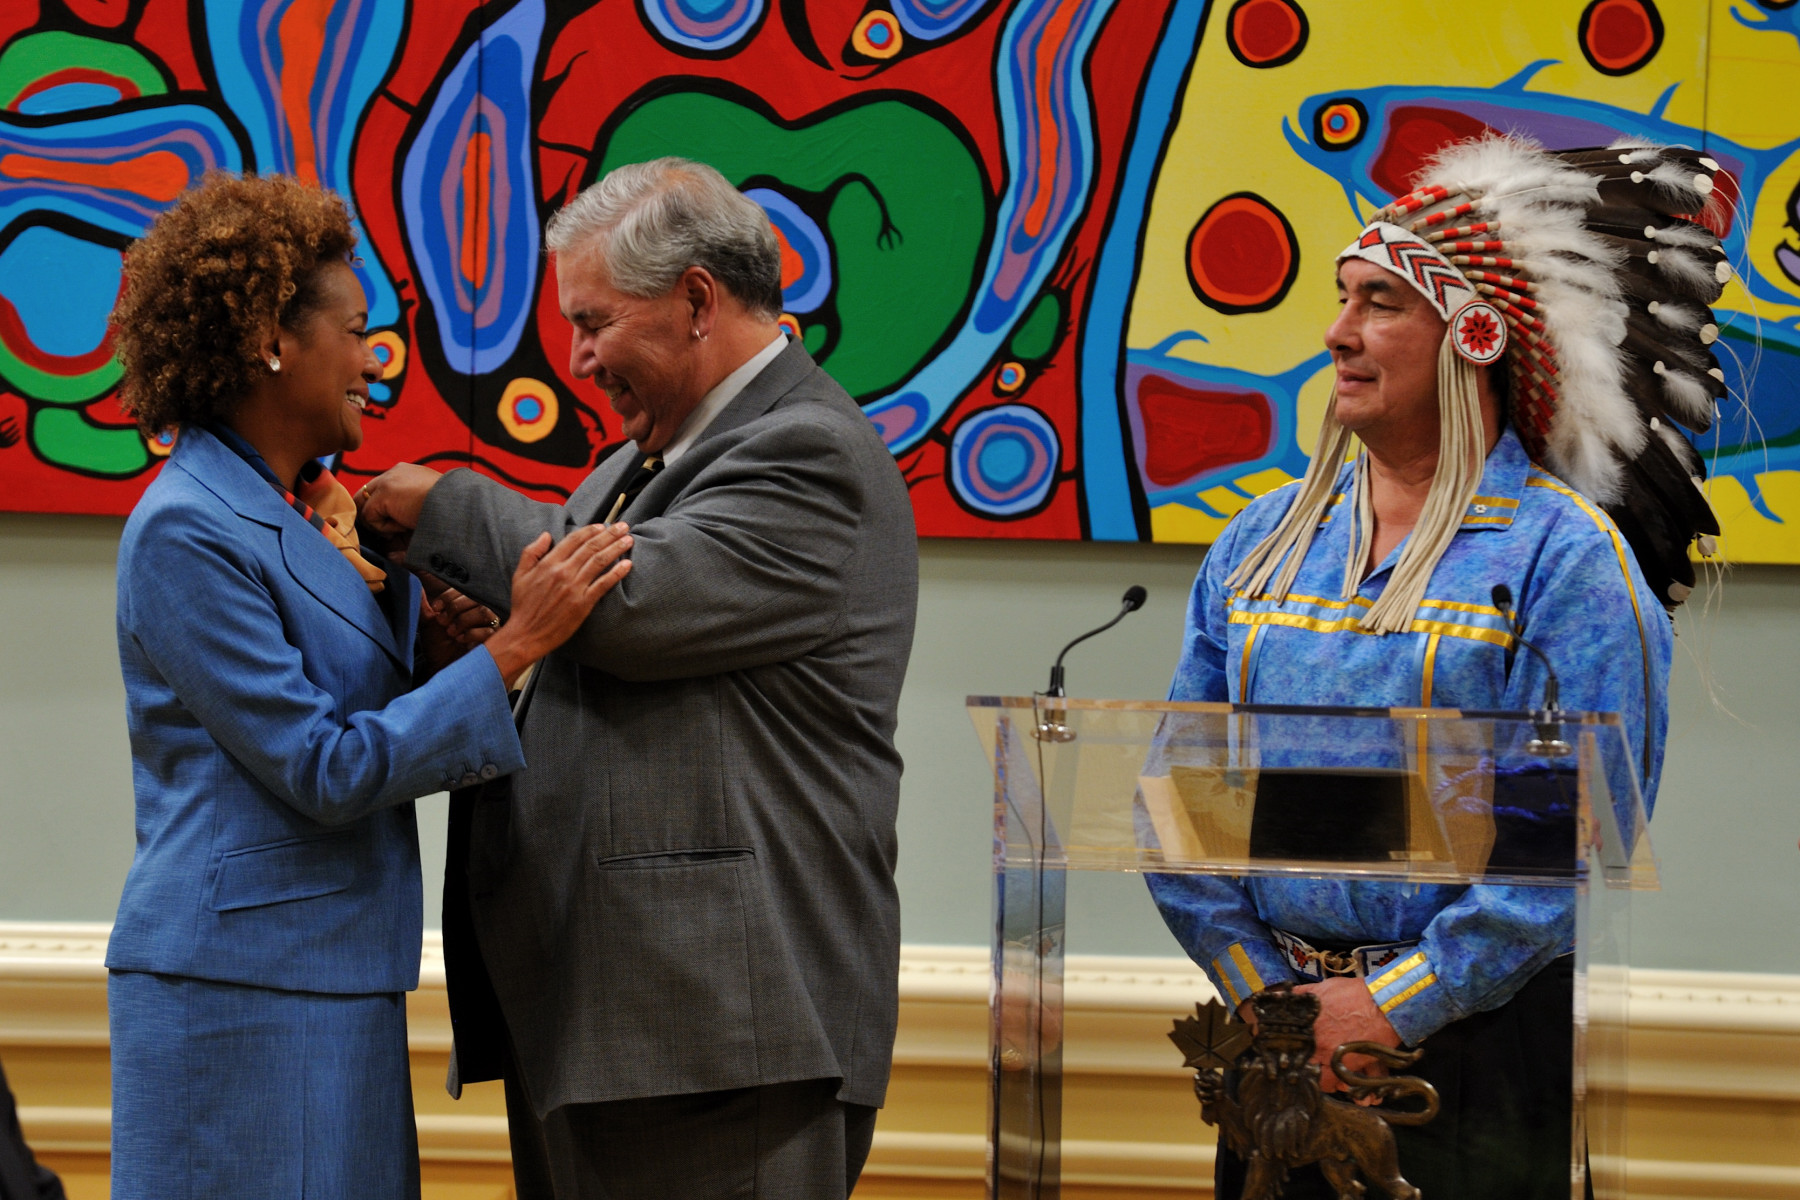 The Honourable Justice Murray Sinclair, Chair of the Commission, offered the official pin of the Commission to Her Excellency while Chief Wilton Littlechild, Commissioner, observed.